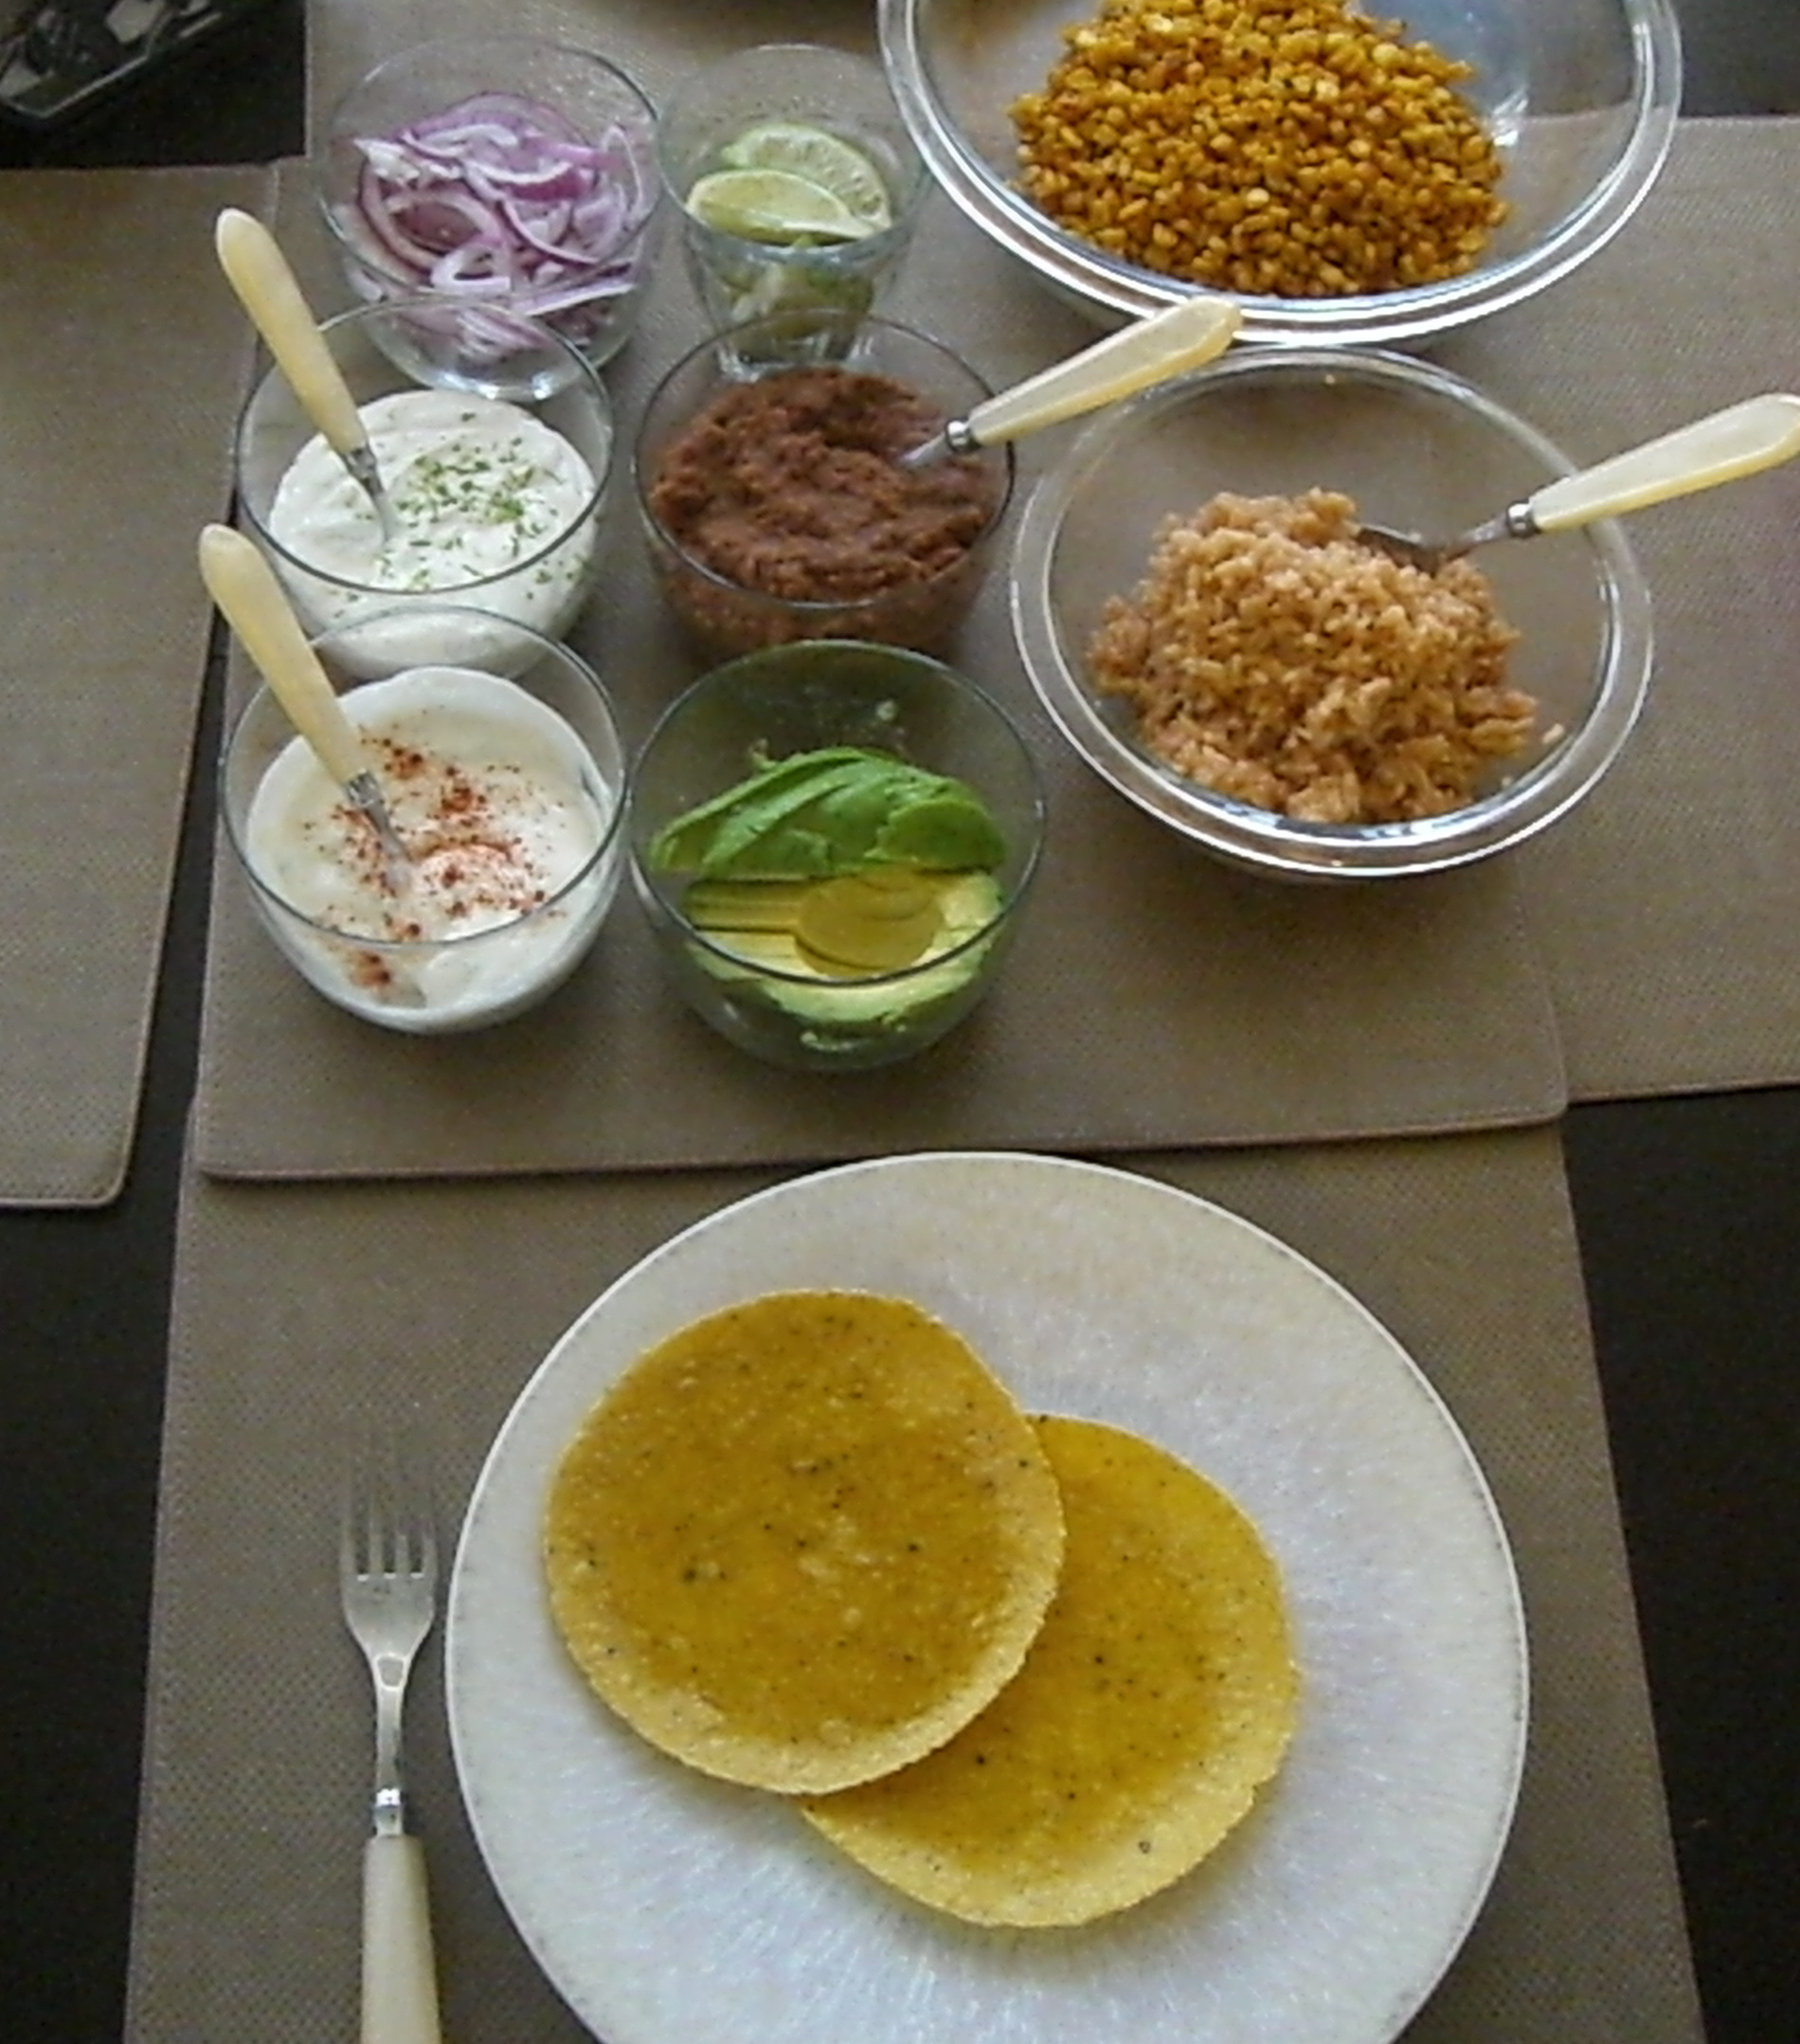 Look at all the makings of this vegan taco dinner!